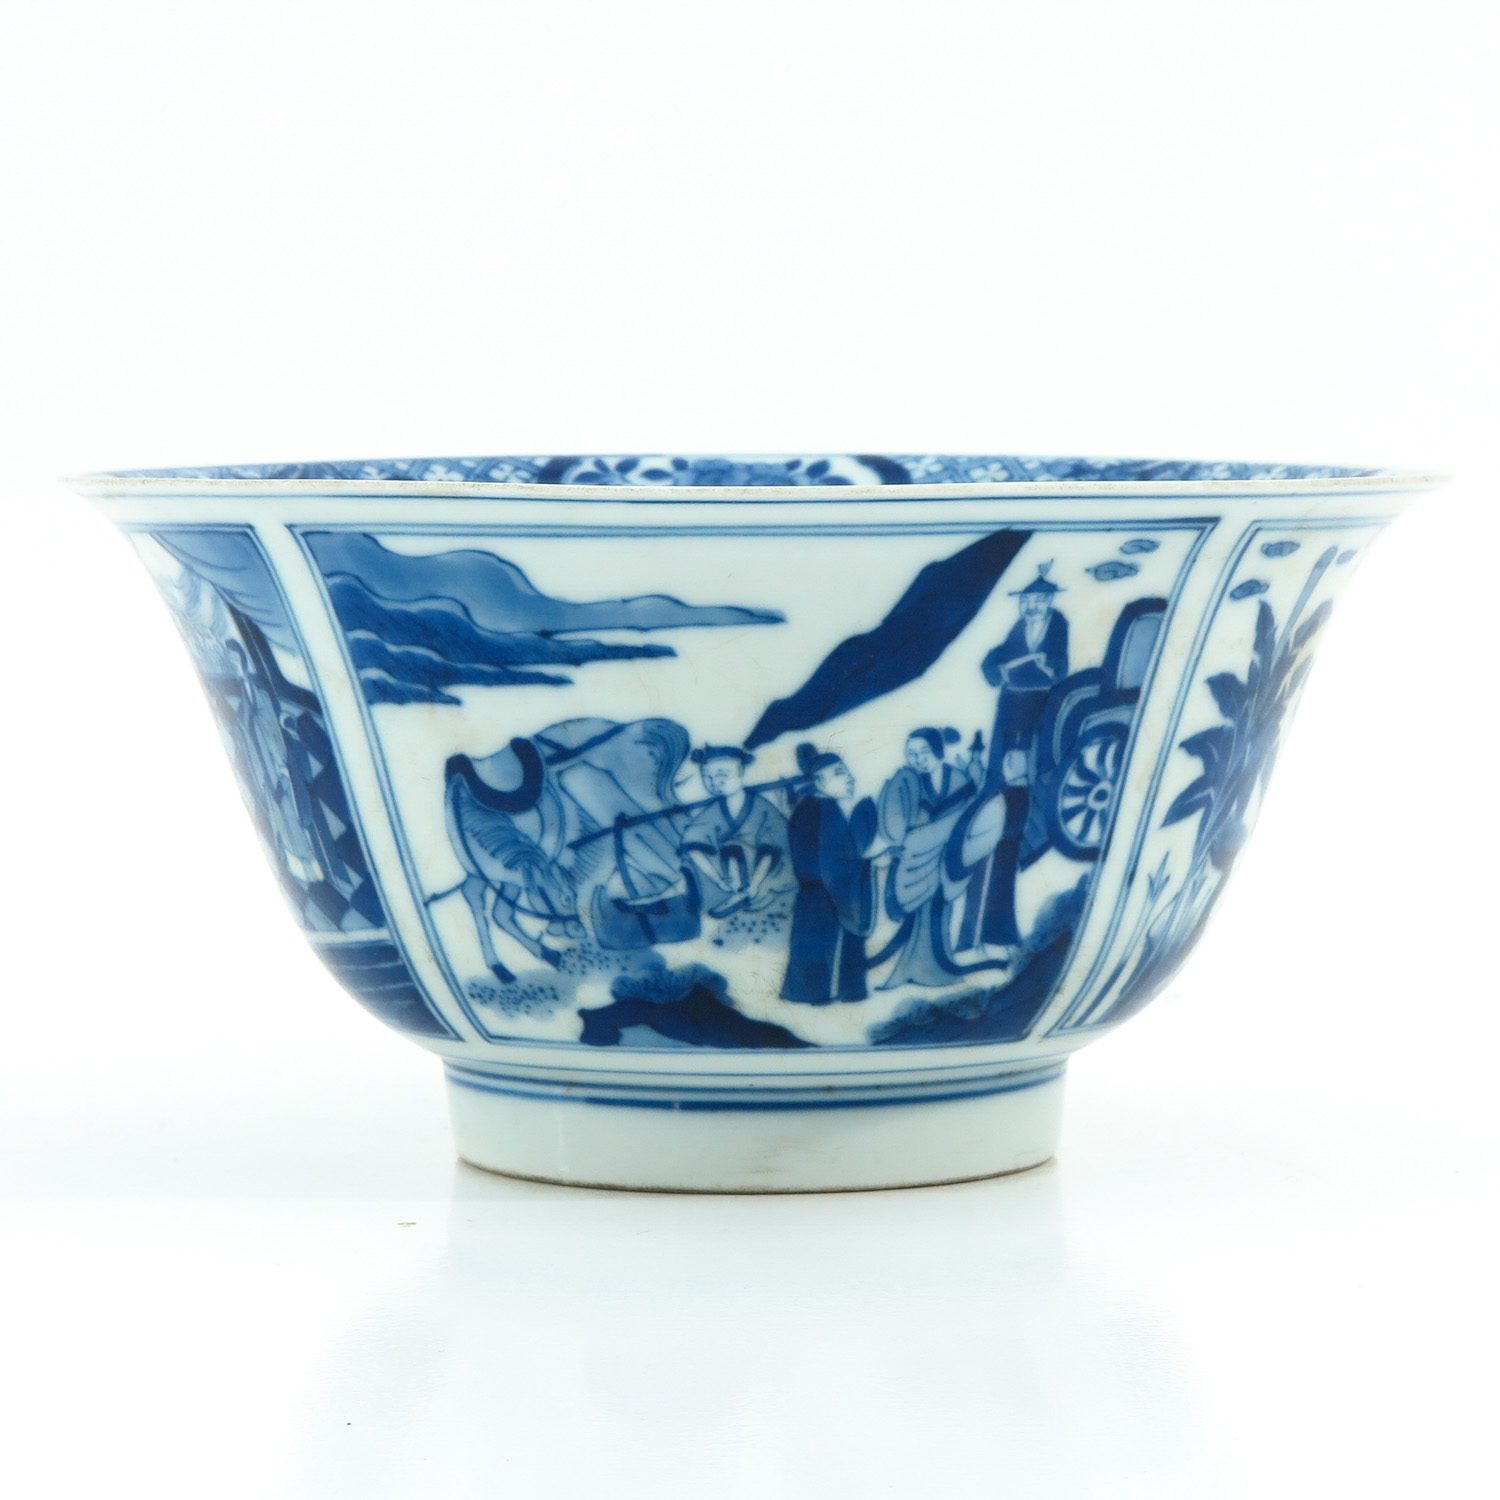 A Blue and White Flared Rim Dish